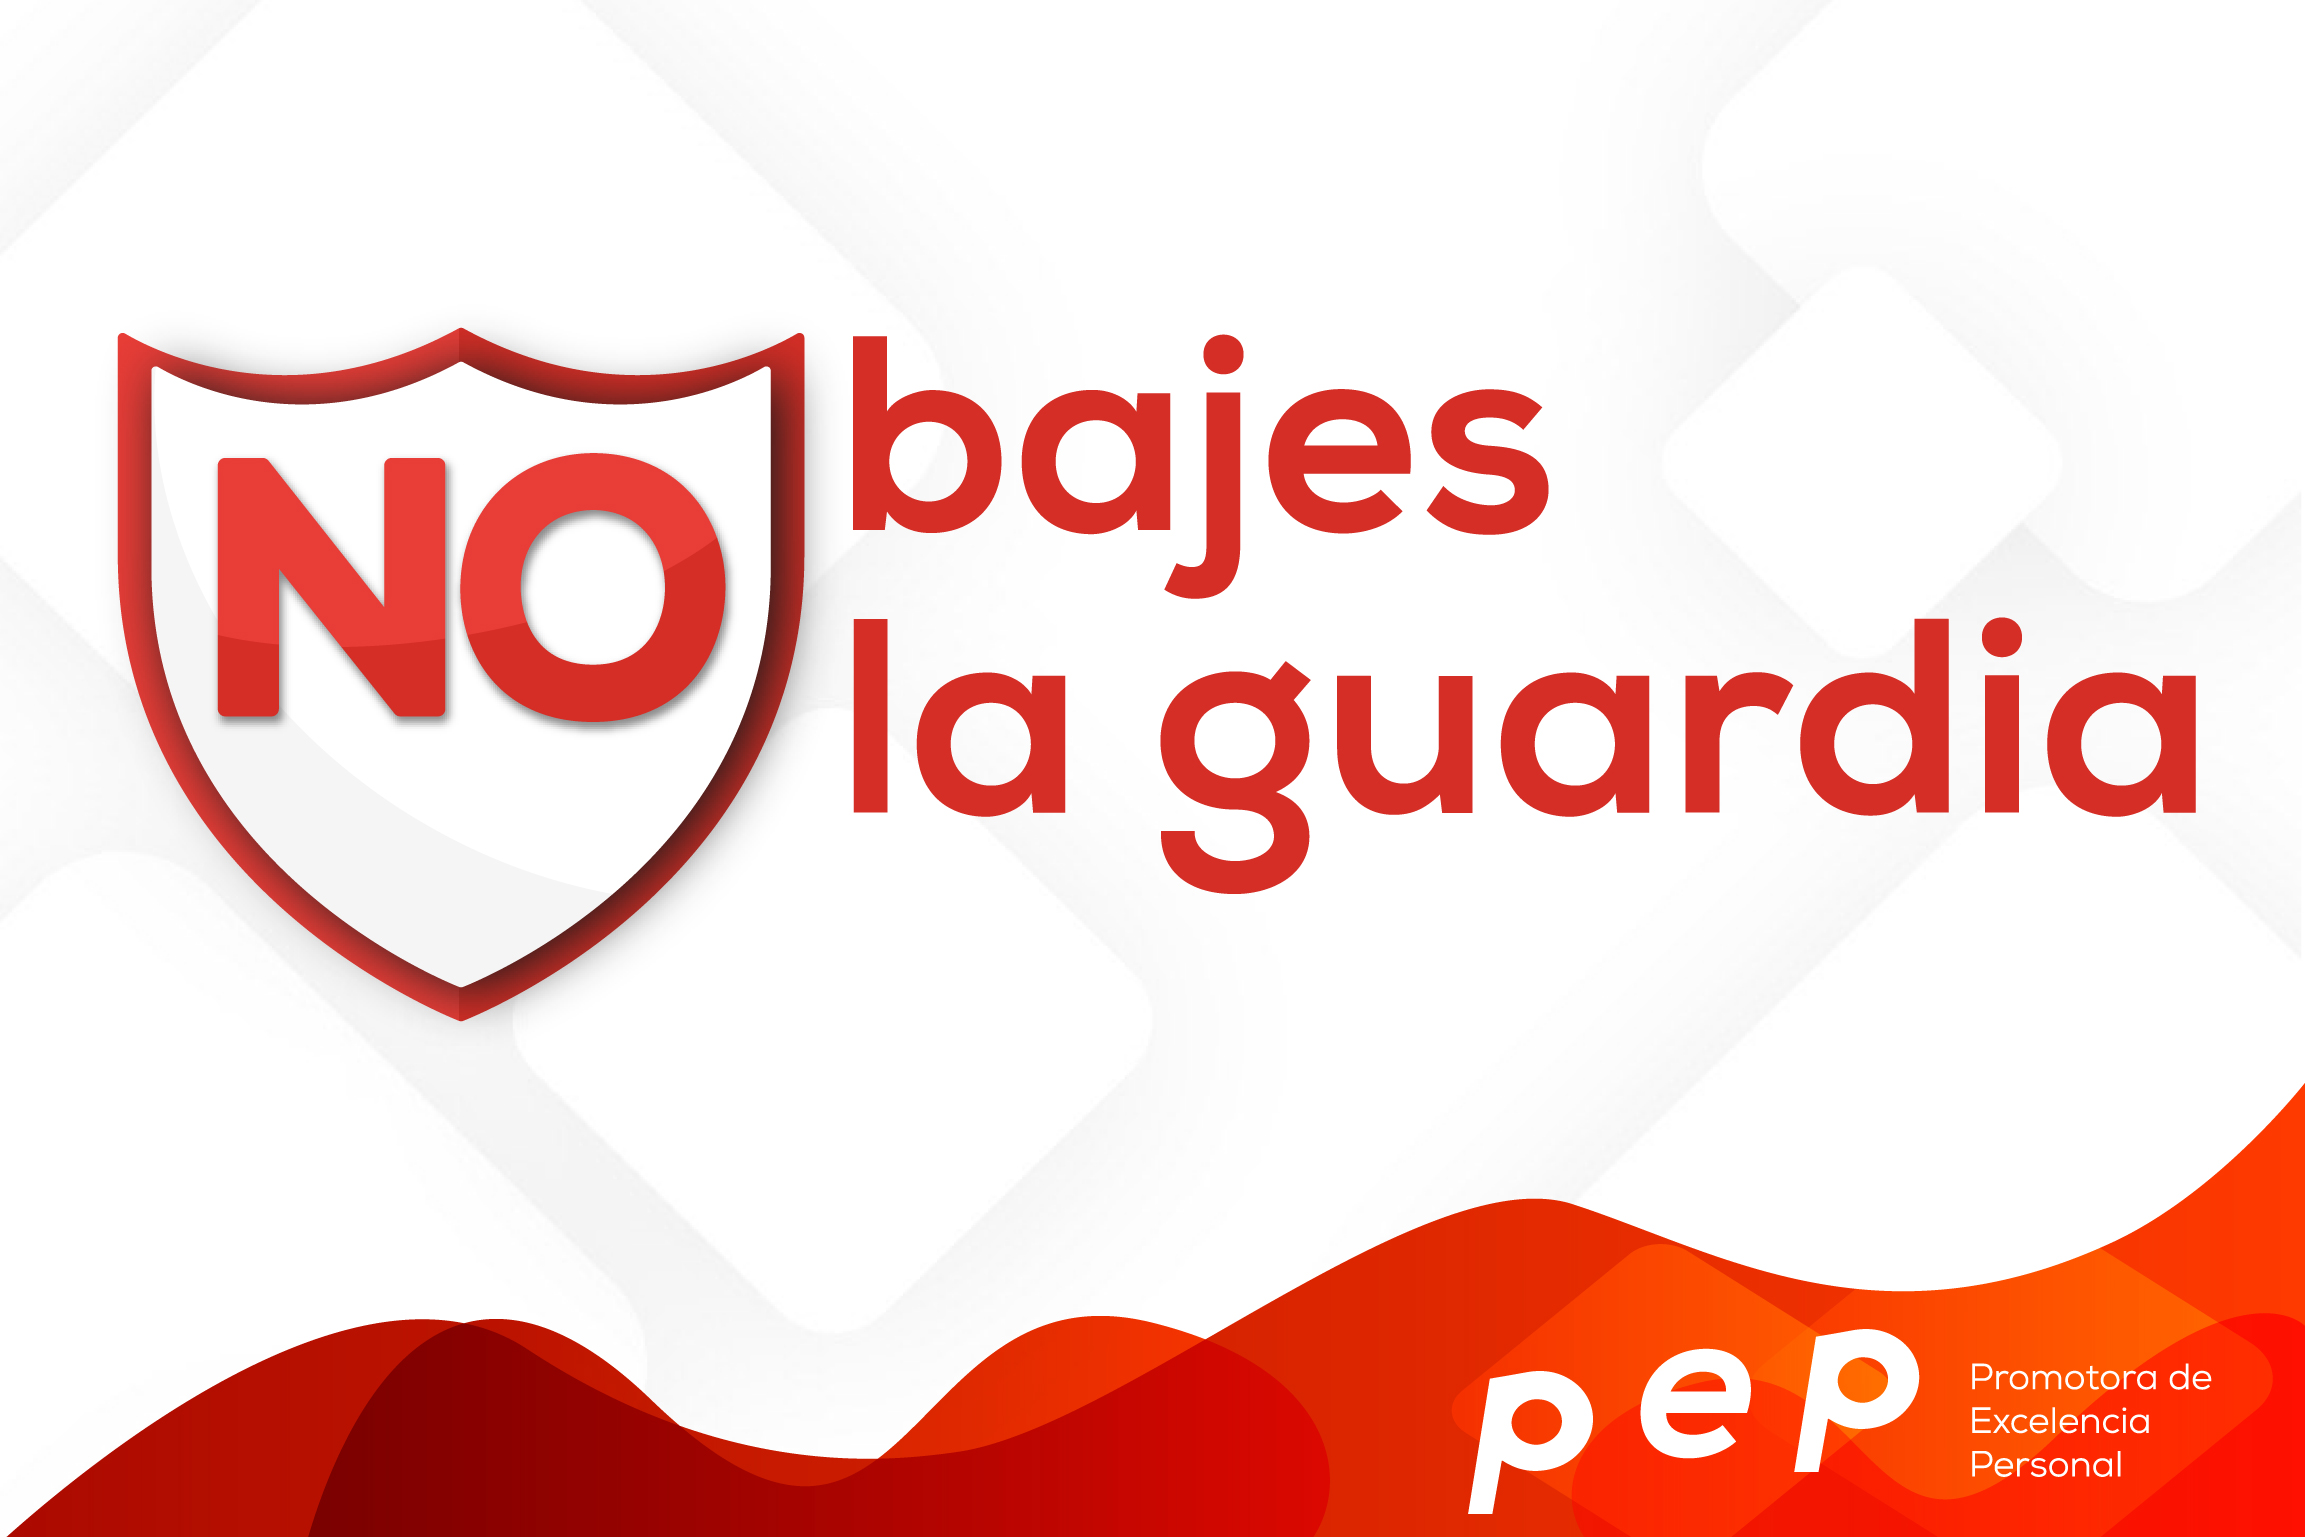 No bajemos la guardia